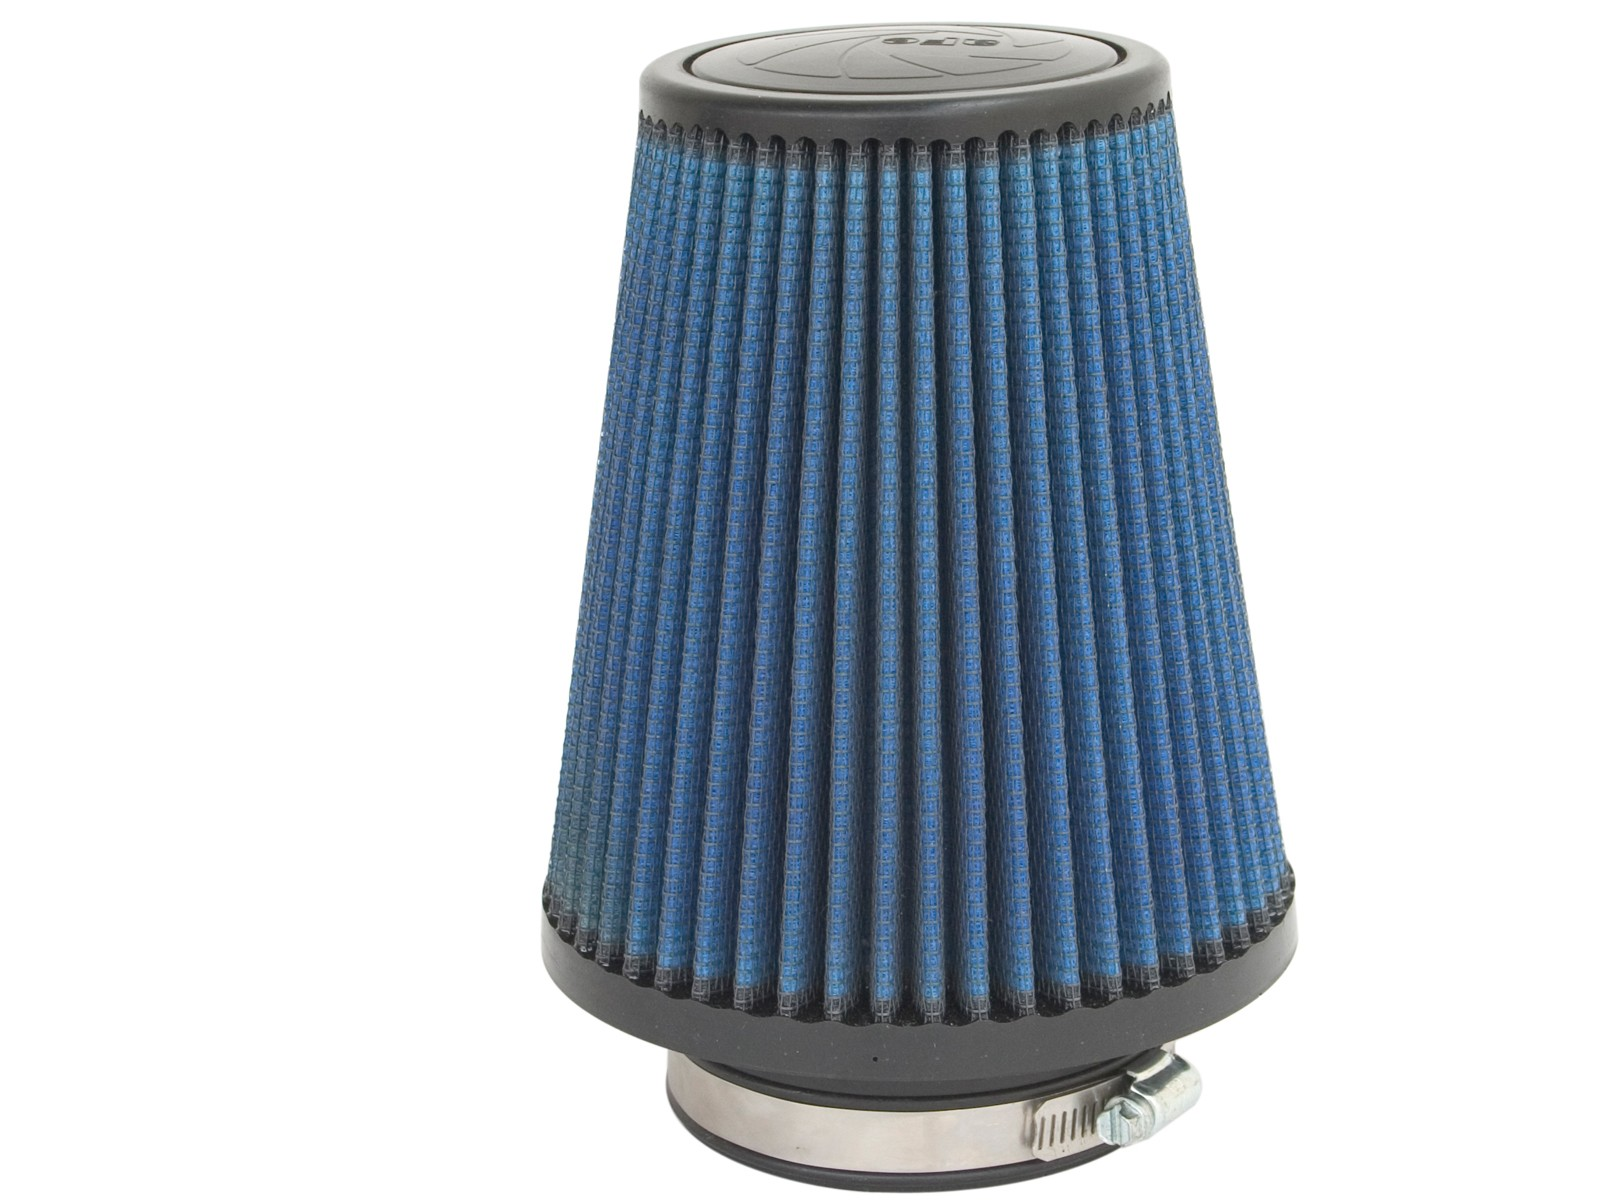 aFe POWER 24-35007 Magnum FLOW Pro 5R Air Filter